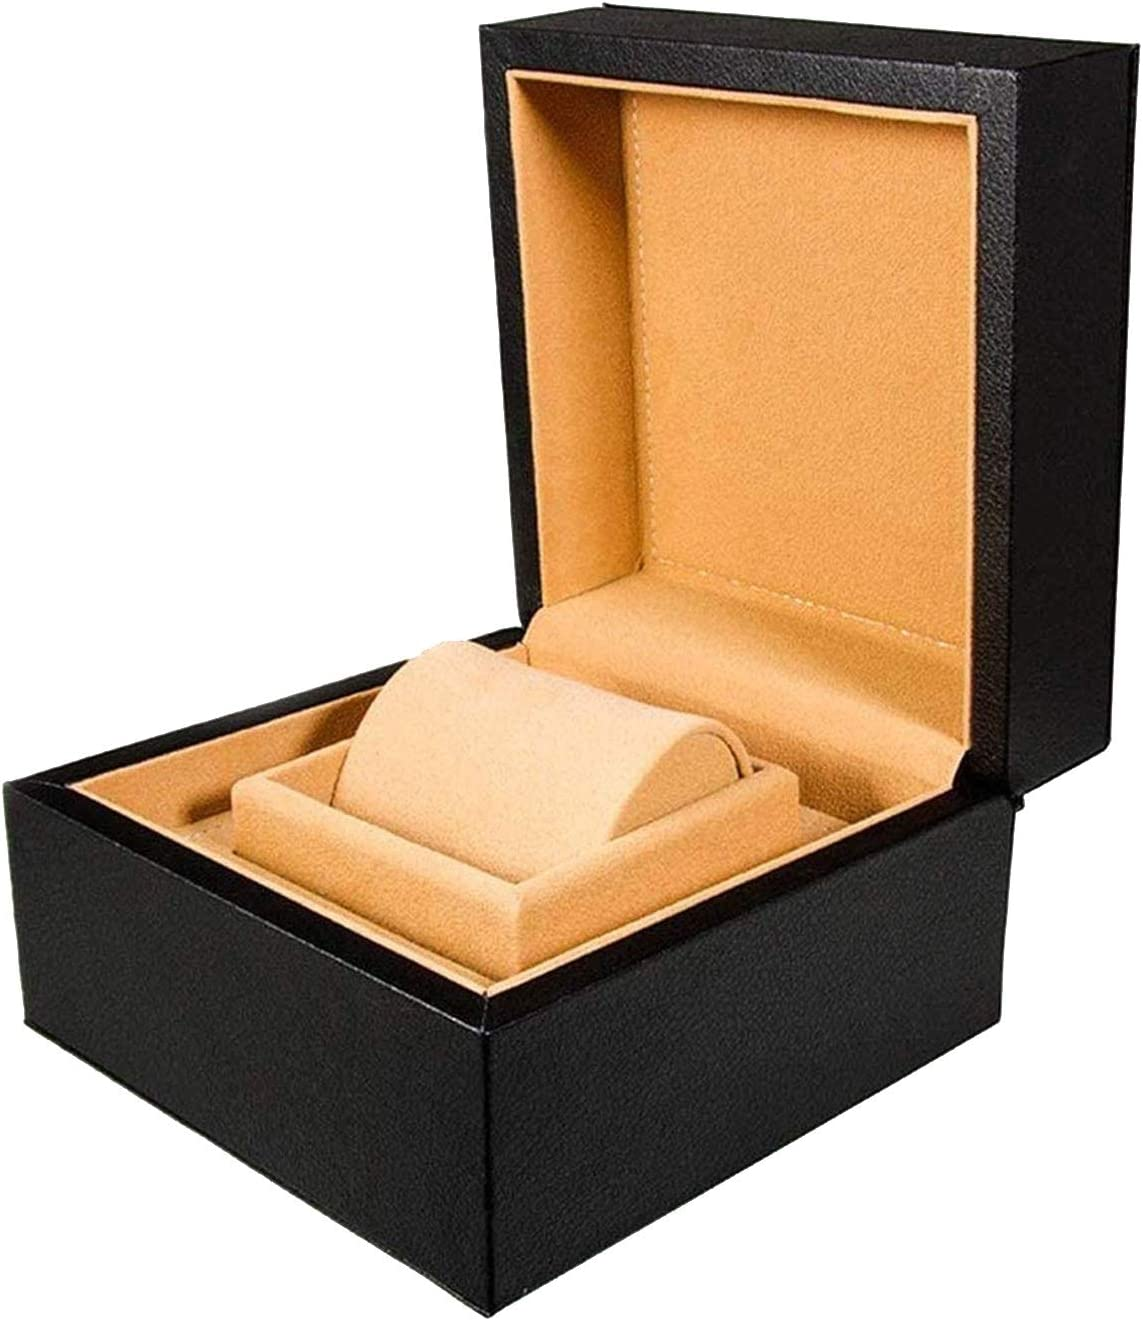 LHGH Jewelry Box Low price Gift Leather Cloth All items in the store Velvet Jewel